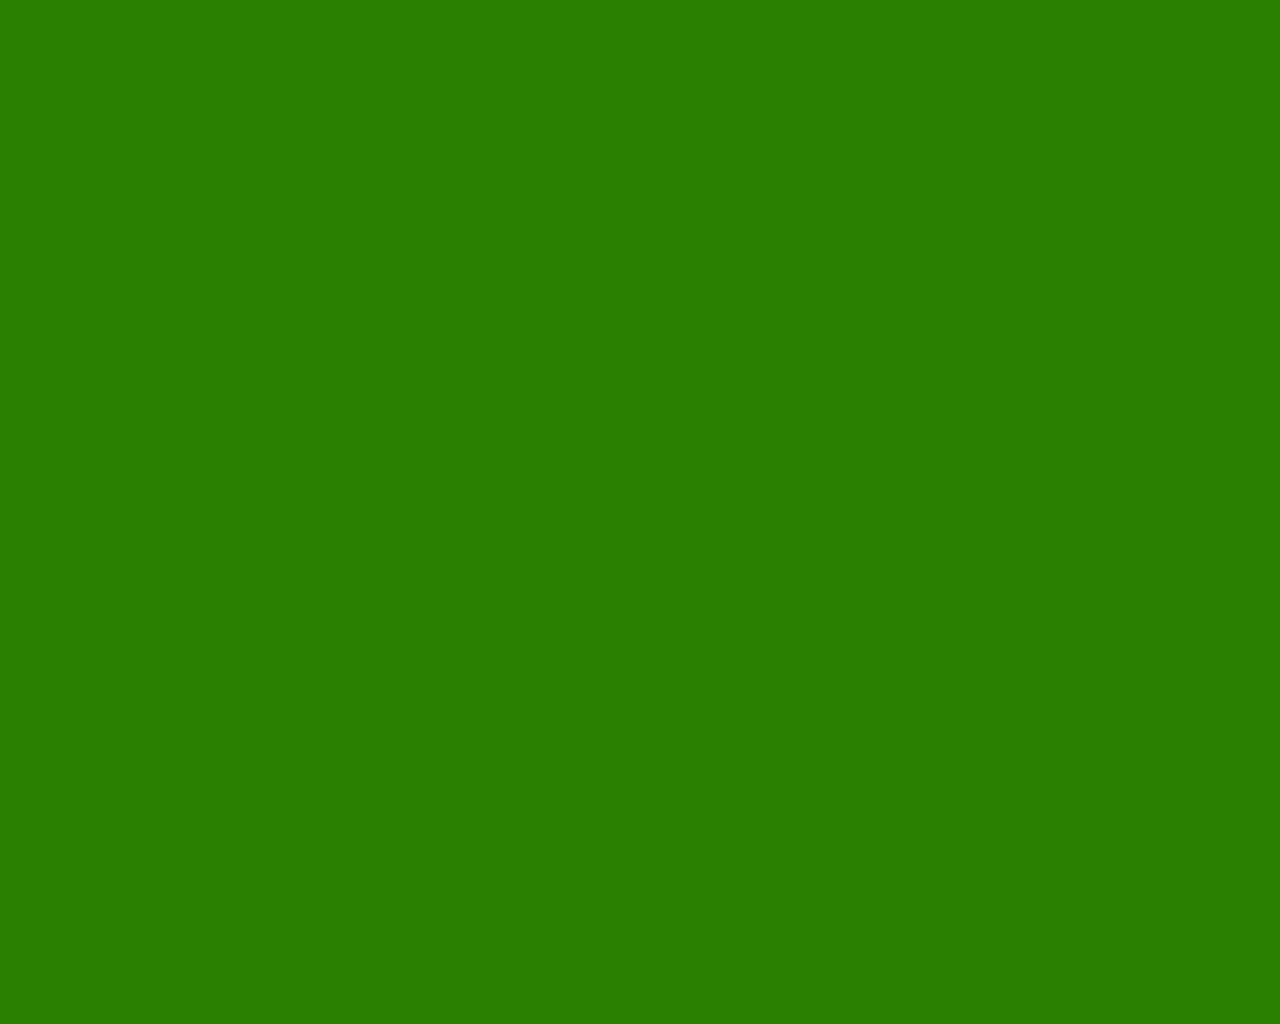 1280x1024 Napier Green Solid Color Background